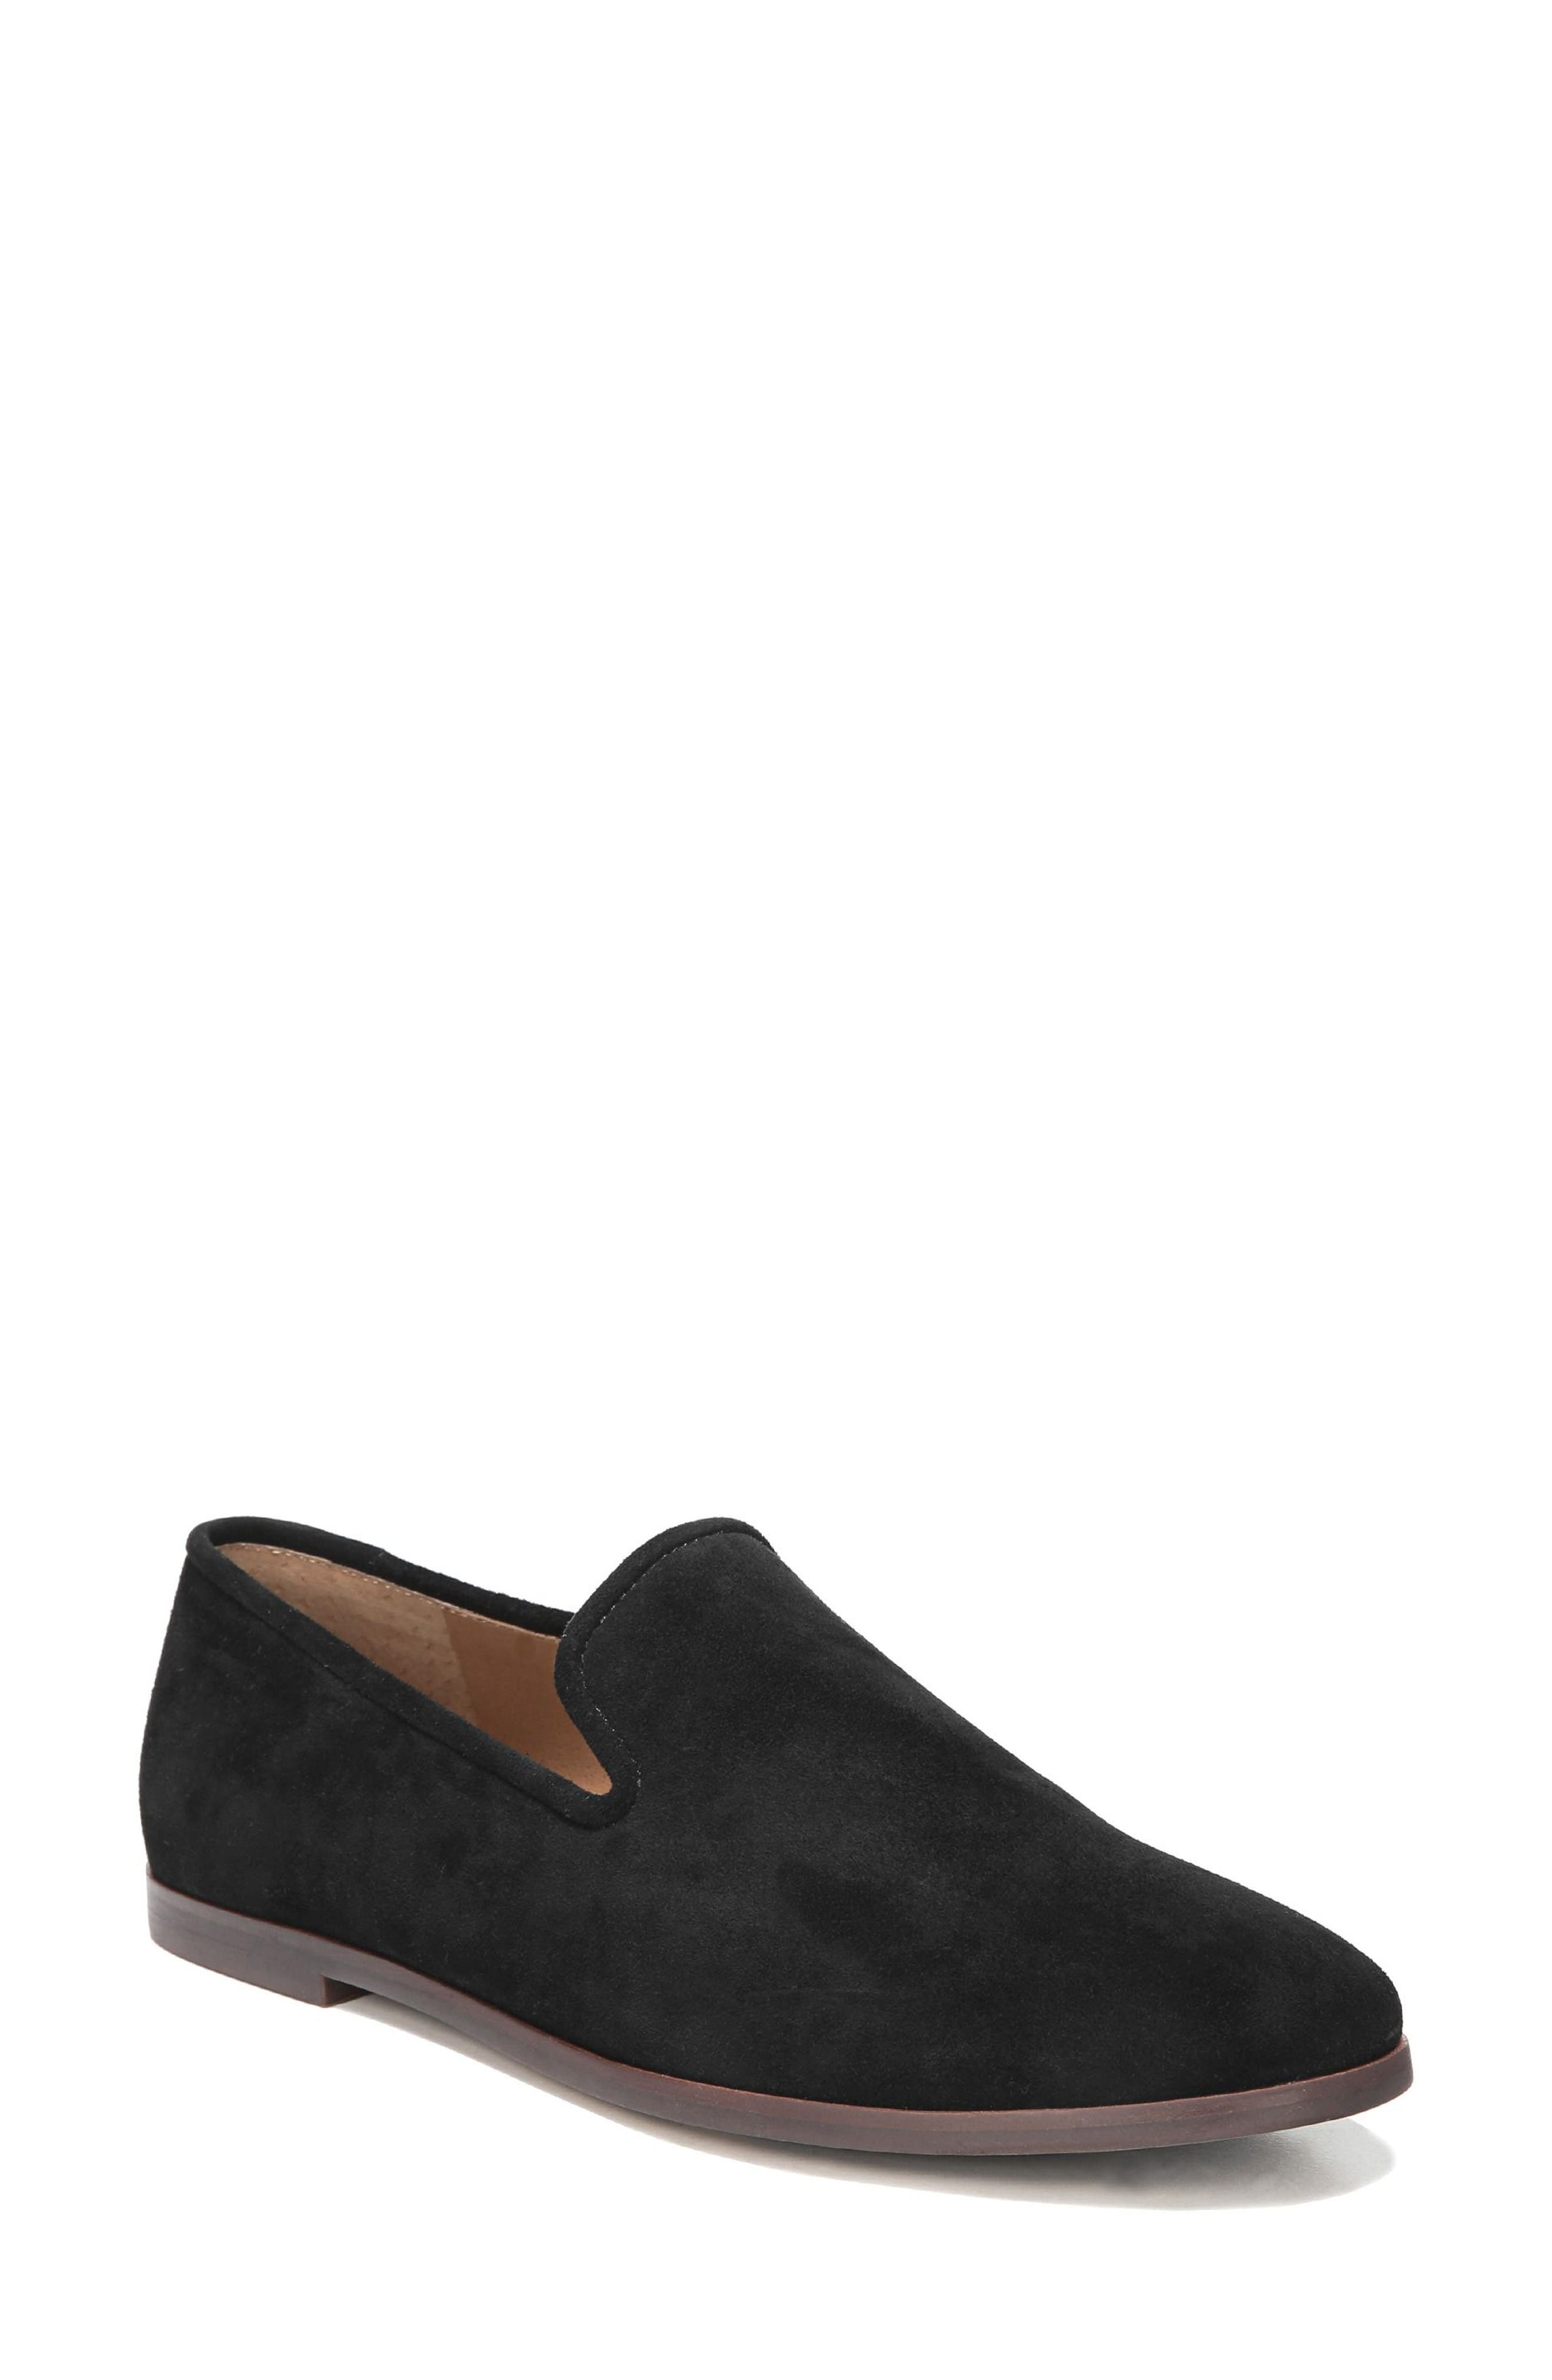 Ayers Loafer Flat,                         Main,                         color, 003